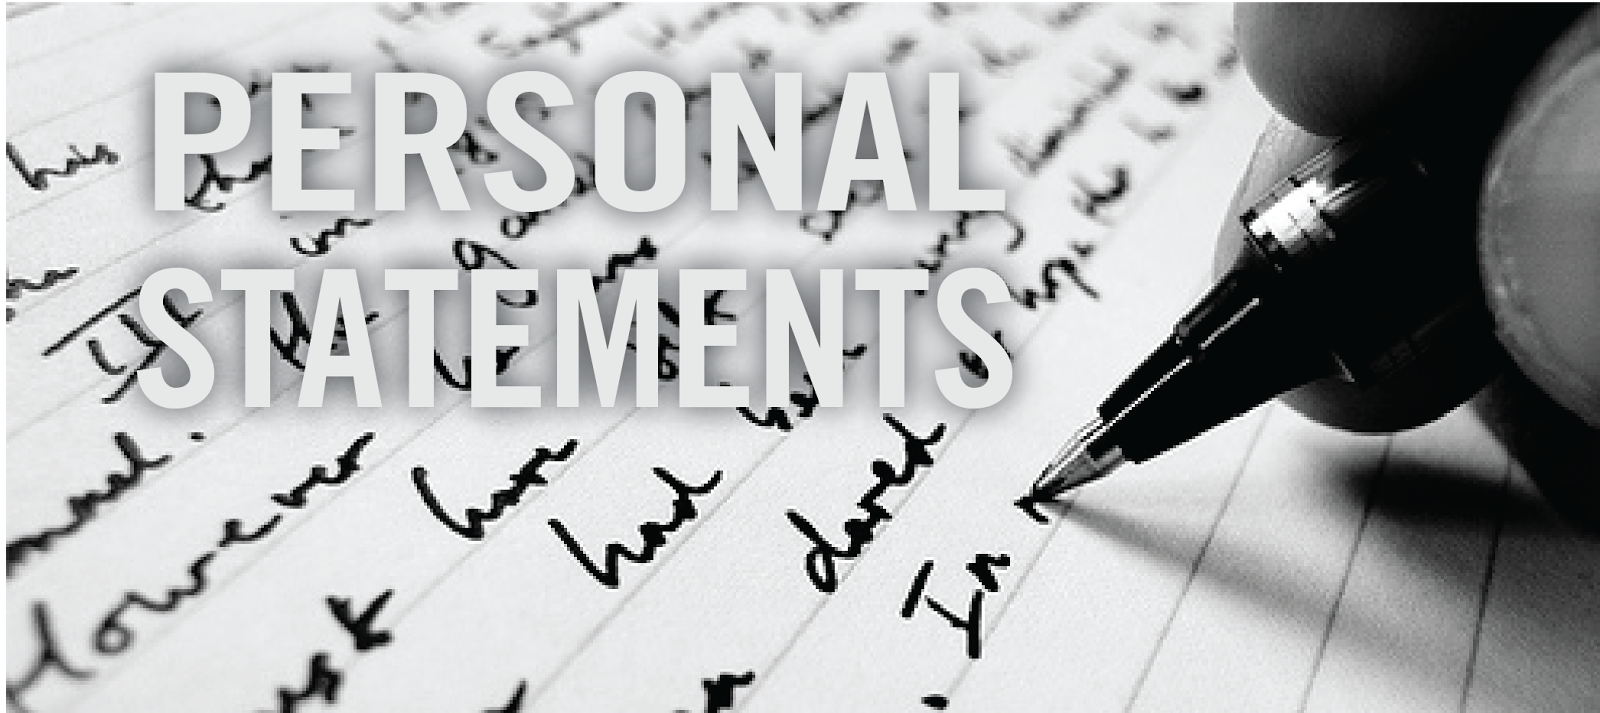 writing a personal essay for law school Personal statement examples - sample law school personal statements it requires a lot of effort and thought to write a personal statement that effectively captures your greatest qualities.